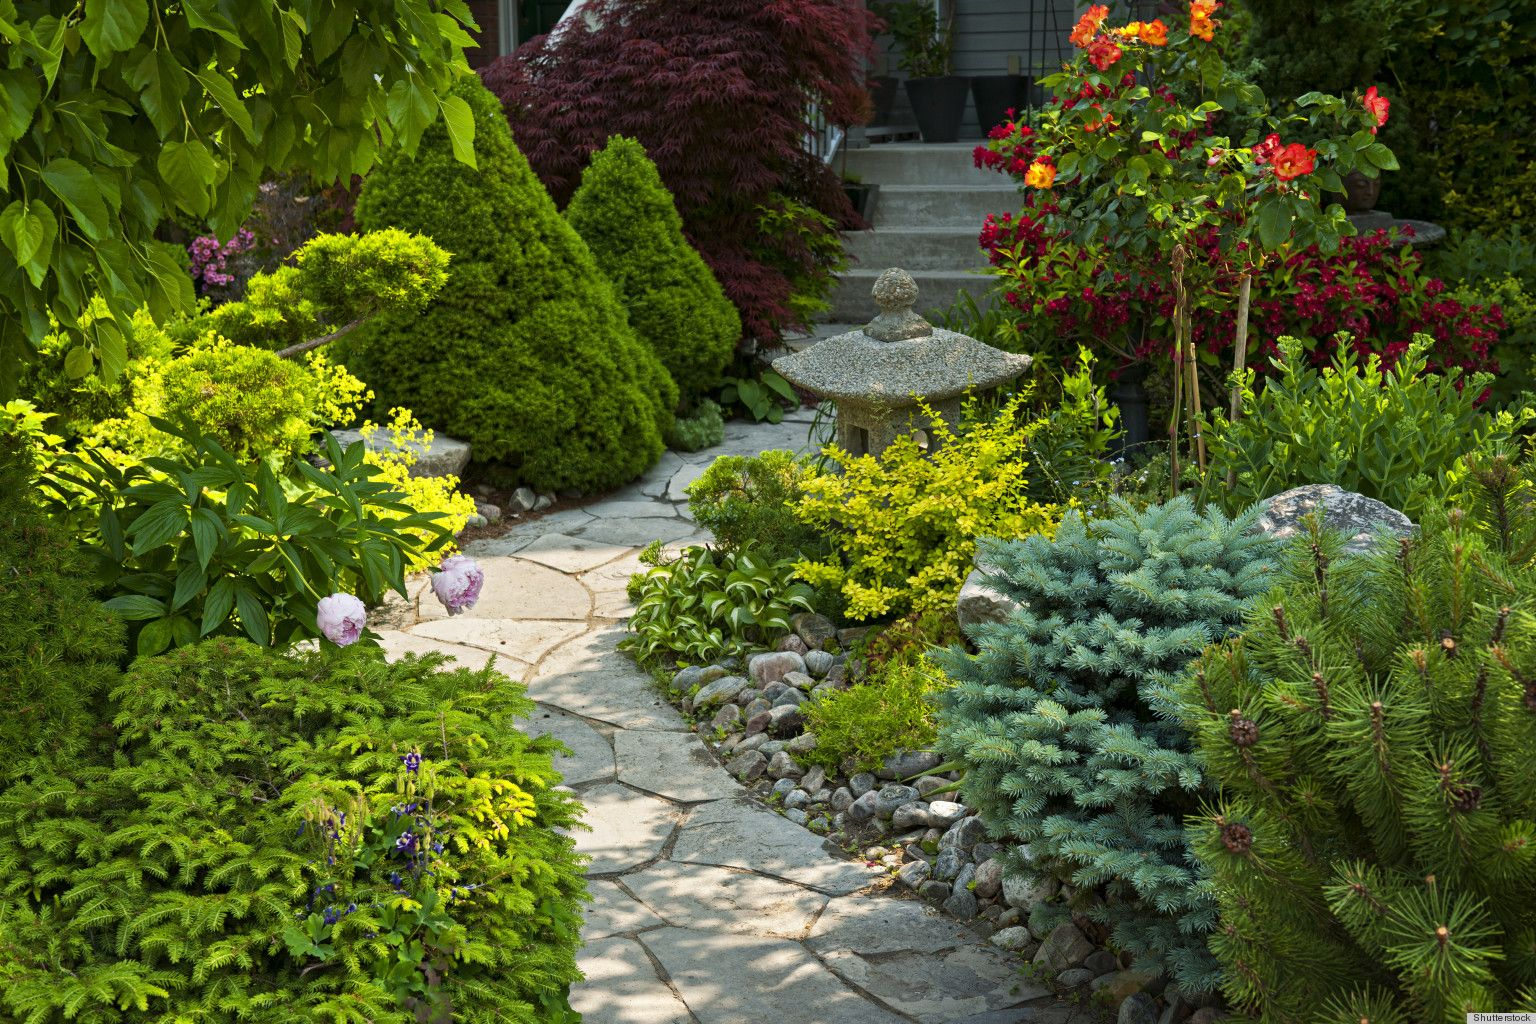 Gardens for your landscape design and garden needs including site - We Re Always Excited To Learn Useful Tips From Gardening Experts But Maintaining An